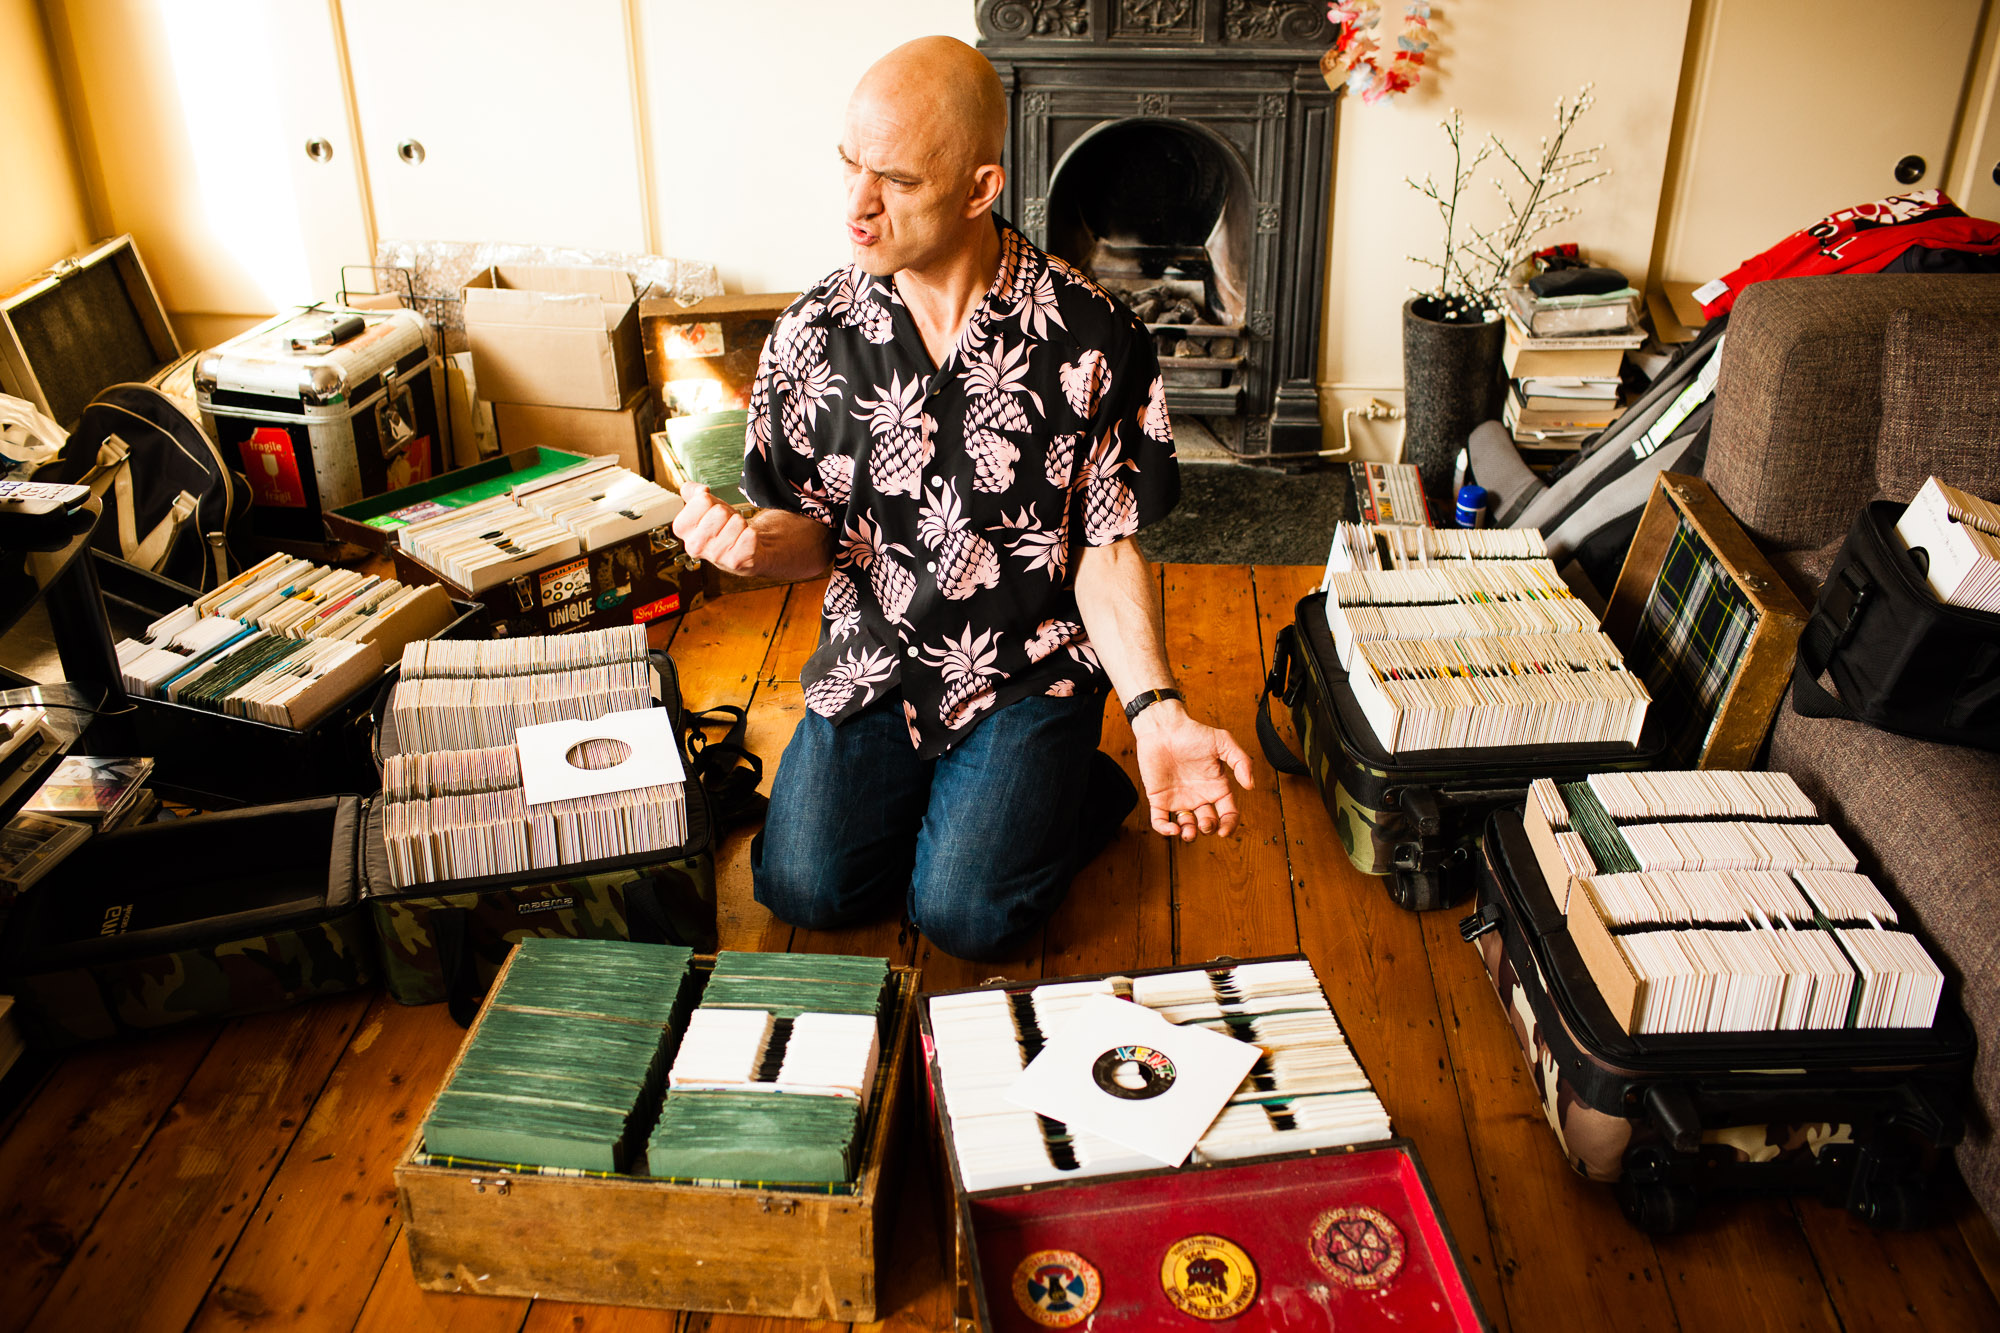 Keb Darge London Uk Dust Grooves Adventures In Record Bott Funko Pop Kc The Incredibles Elastigirl Collecting A Book About Vinyl Records Collectors